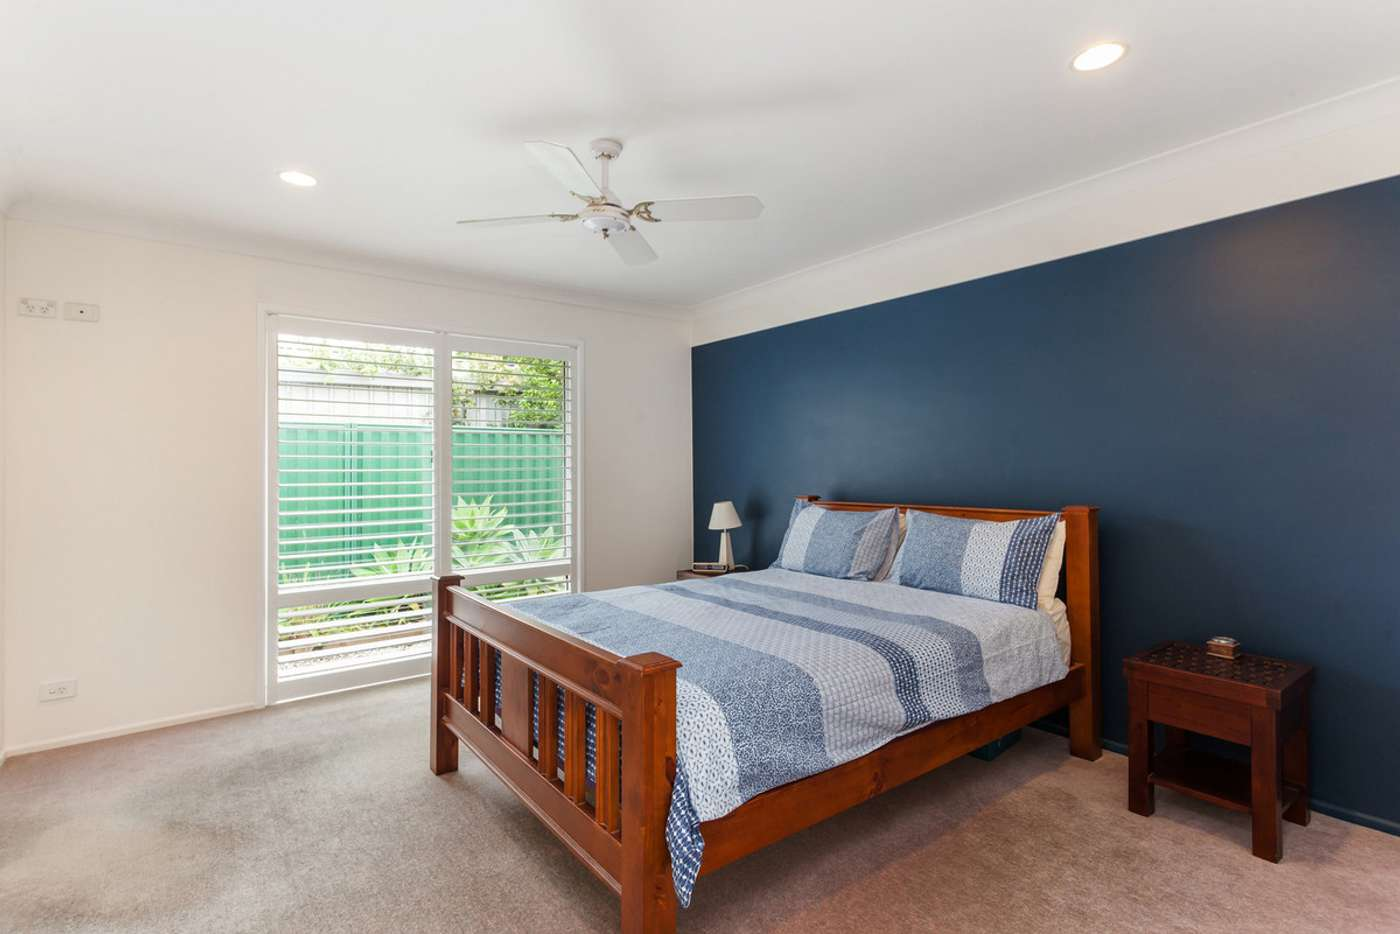 Sixth view of Homely house listing, 35 Manakin Avenue, Burleigh Waters QLD 4220